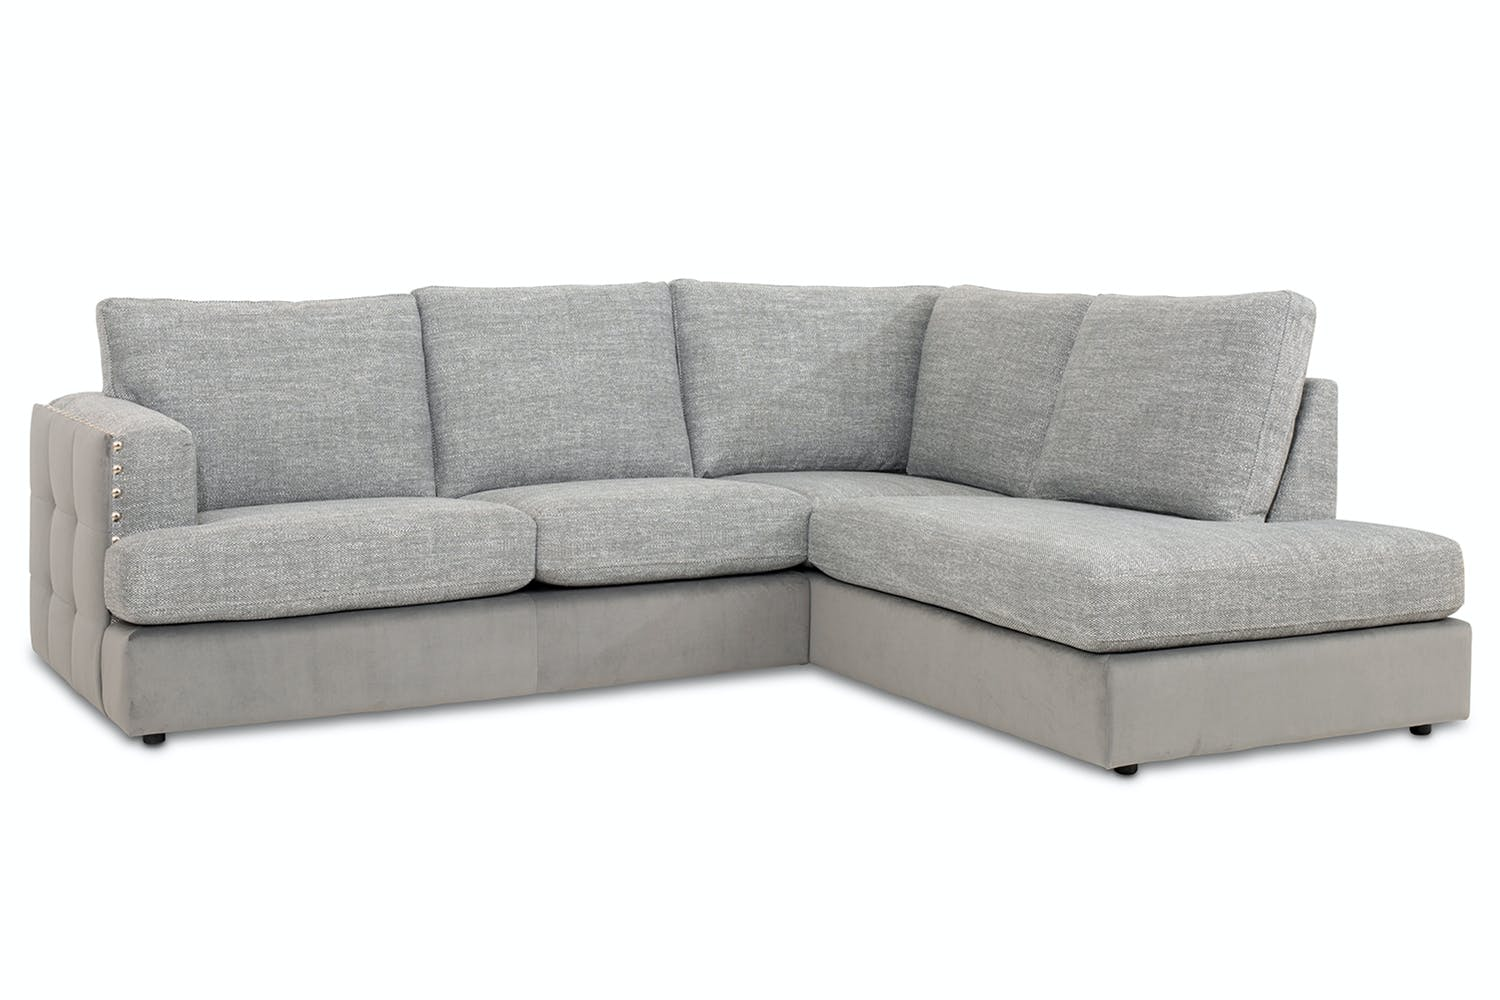 Dillon 2 Seater Chaise Sofa   Side Options   Ireland